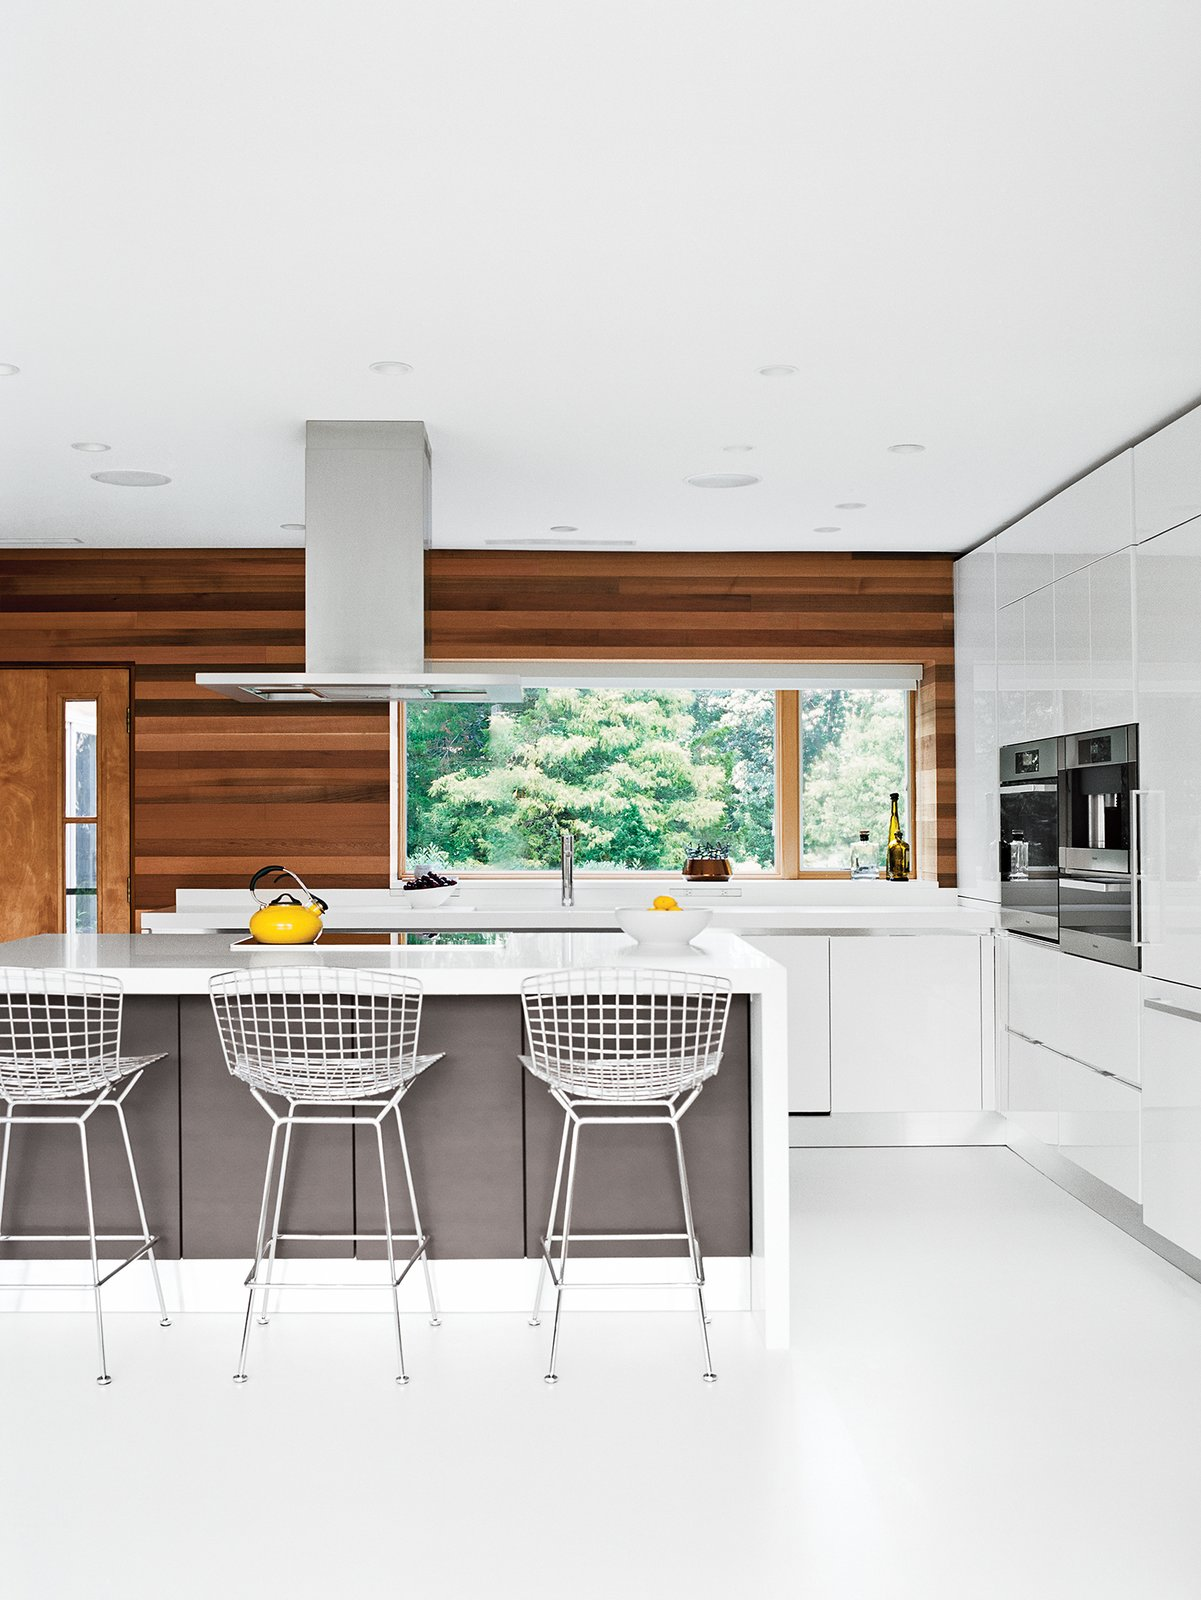 Kitchen, Wall Oven, Range Hood, White Cabinet, and Wood Cabinet Bertoia bar stools by Knoll are tucked under the island in the Scavolini Scenery kitchen. Jordan replaced the original wood flooring with white resin, a robust surface used in high-traffic environments.  Winter-White Kitchens and Bathrooms by Diana Budds from The Midcentury Spirit is Alive and Well in This Hudson Valley Escape